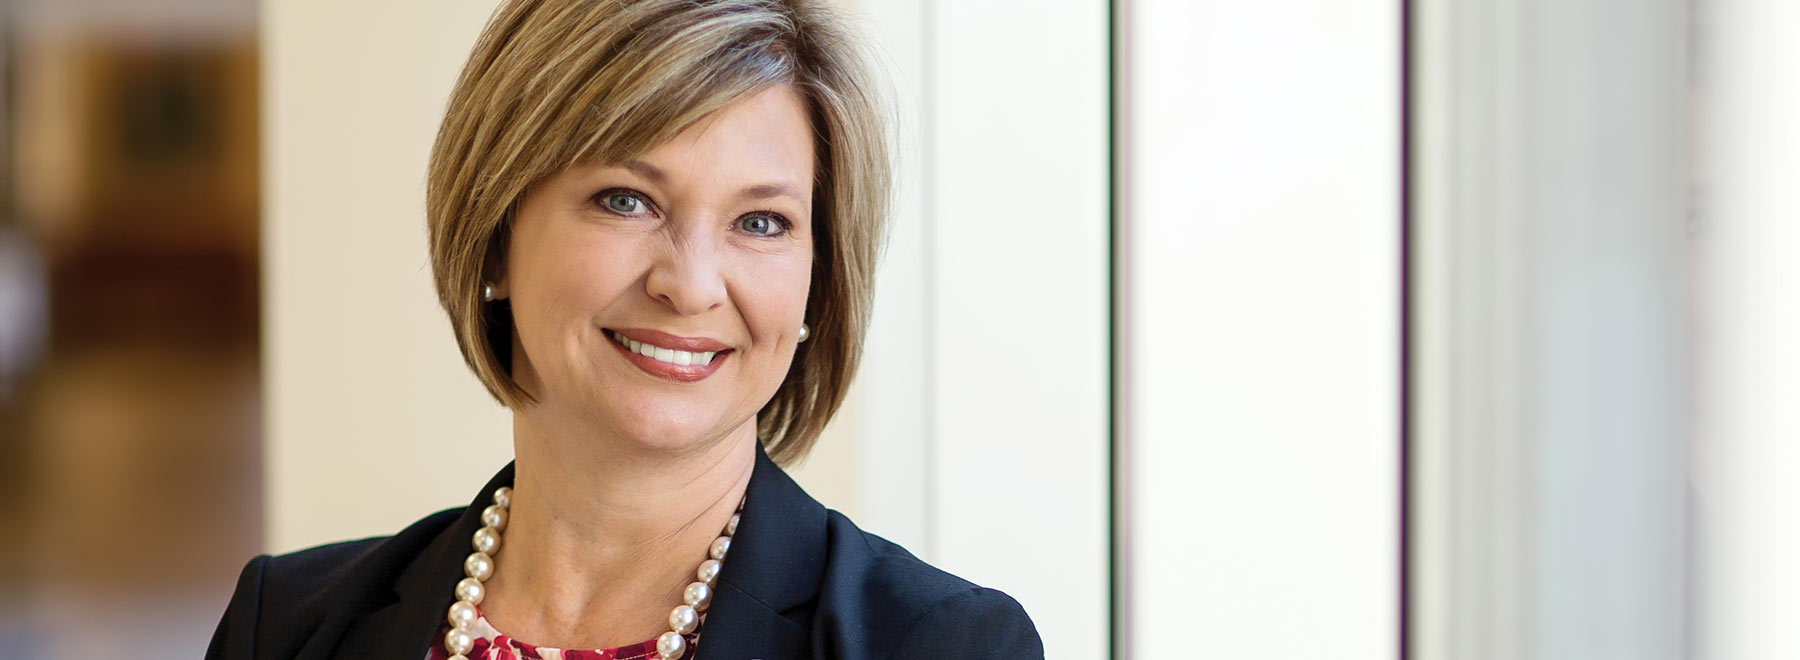 Vice Chancellor Louann Woodward Biography University Of